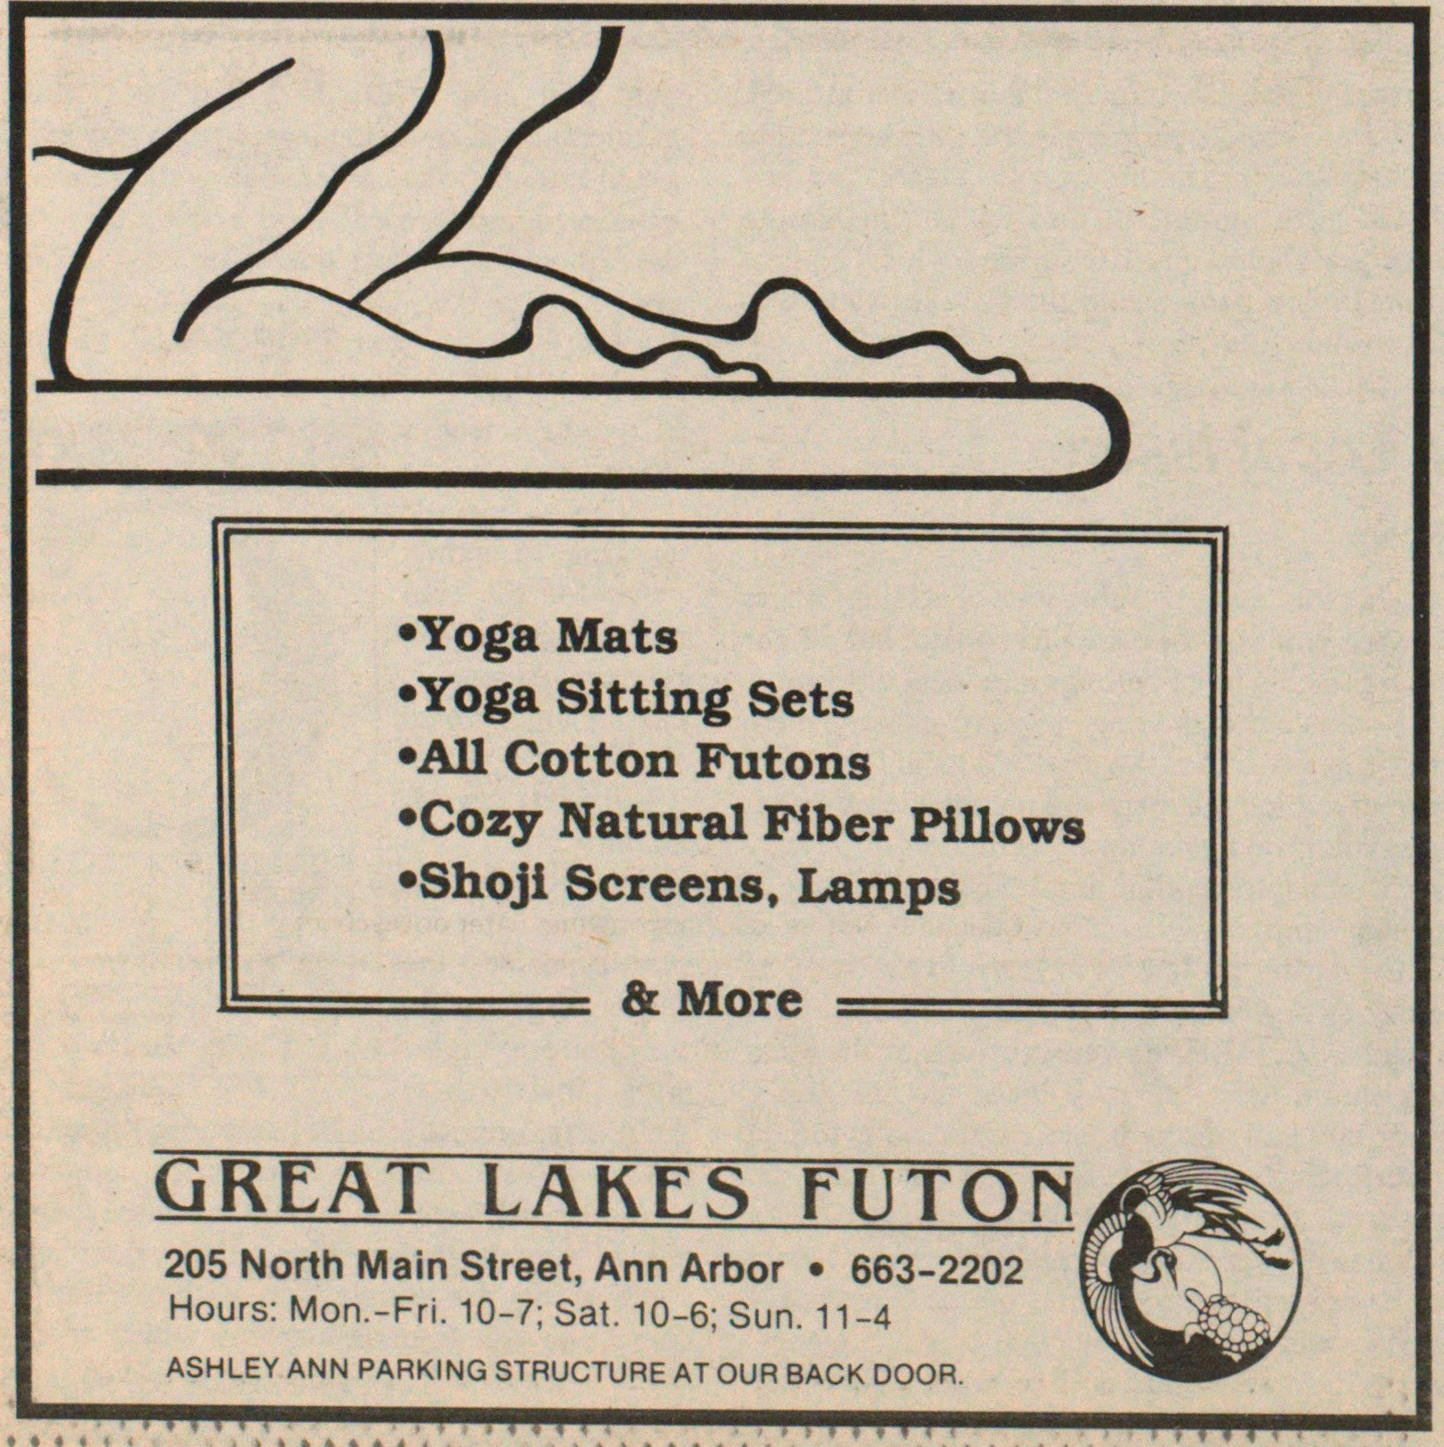 Great Lakes Futon image